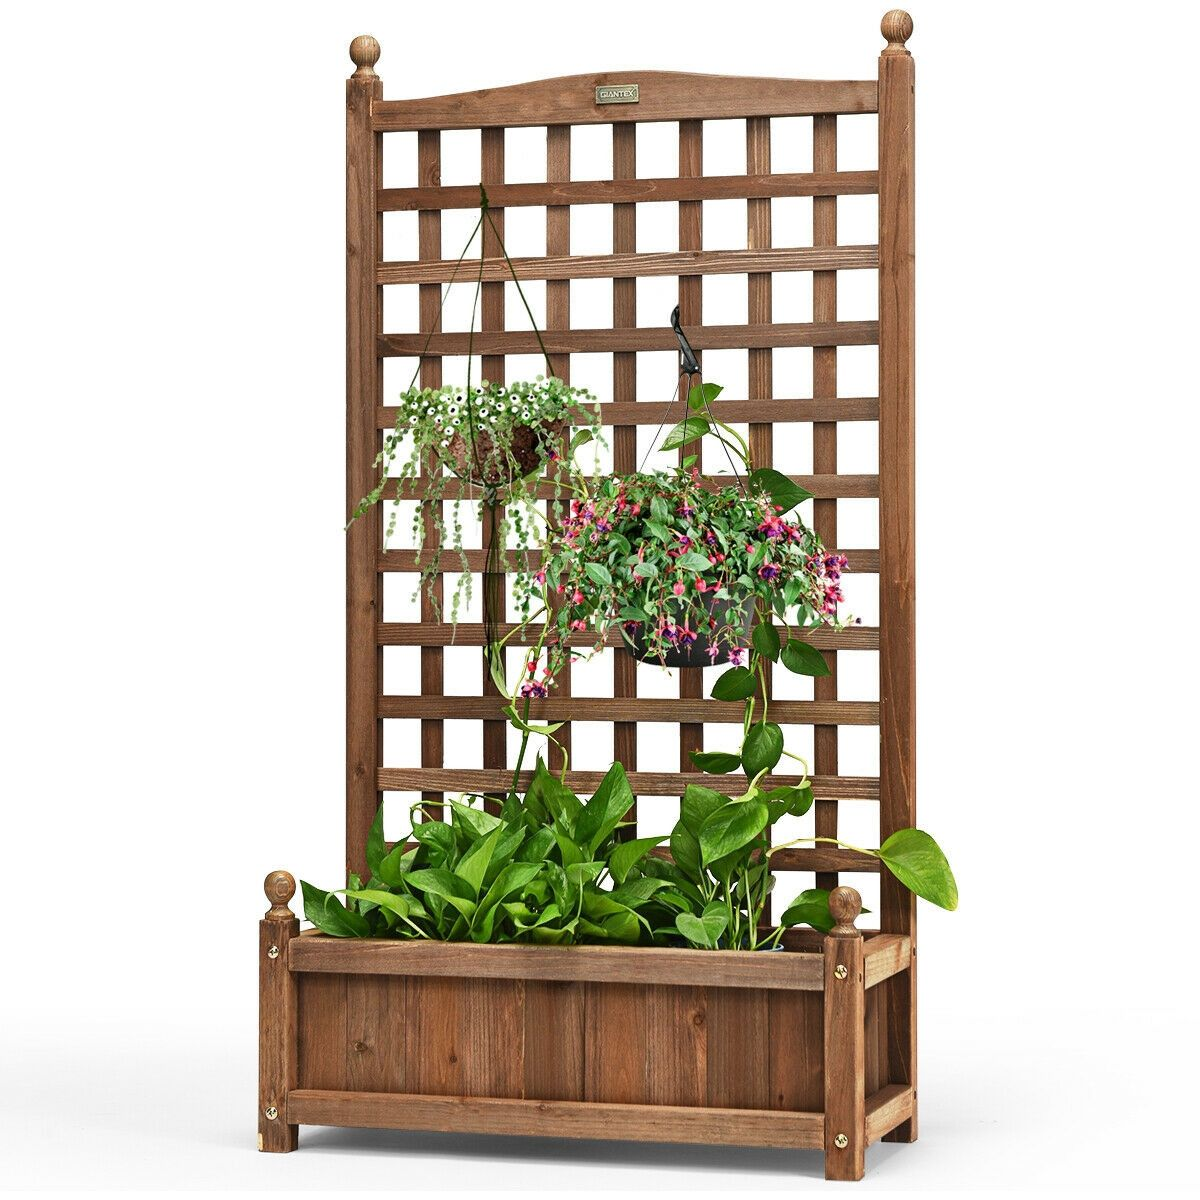 Solid Wood Planter Box With Trellis Weather Resistant Outdoor In 2020 Planter Box With Trellis Wood Planters Wood Planter Box